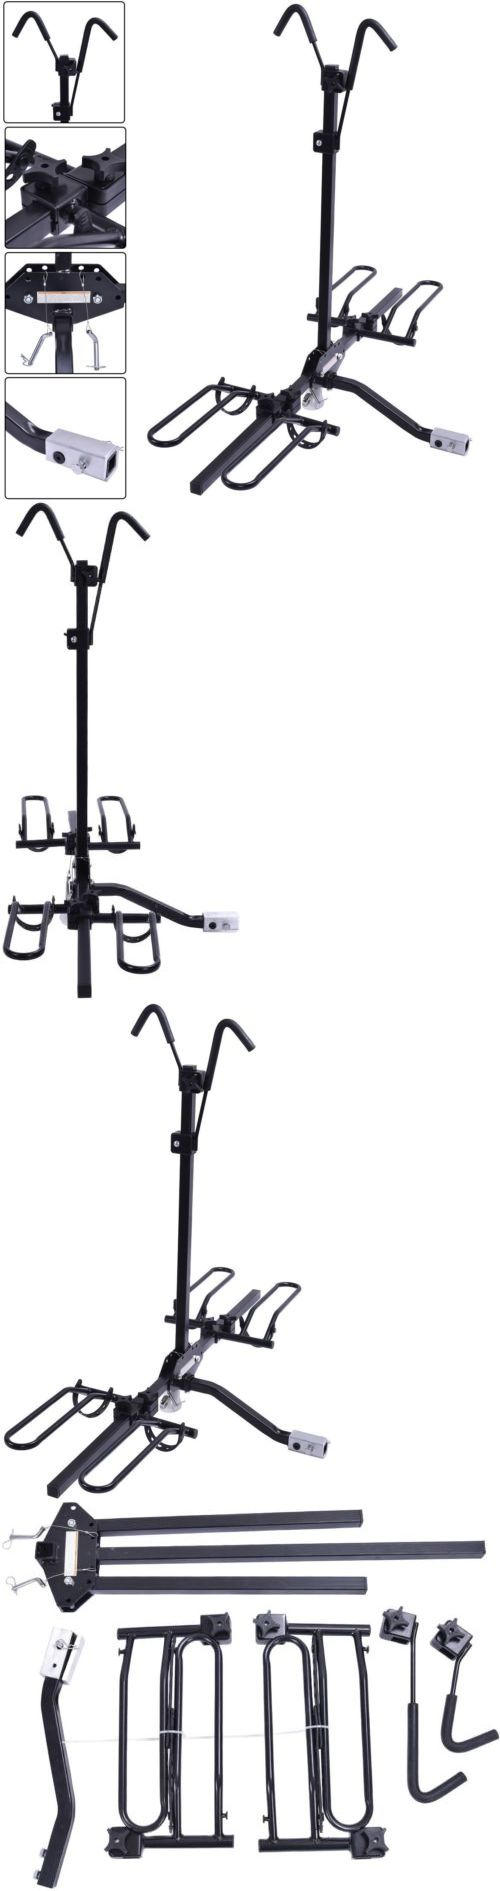 Car and Truck Racks 177849: 2 Bike Carrier Platform Hitch Rack Bicycle Rider Mount Sport Fold Receiver 2 In -> BUY IT NOW ONLY: $67.99 on eBay!